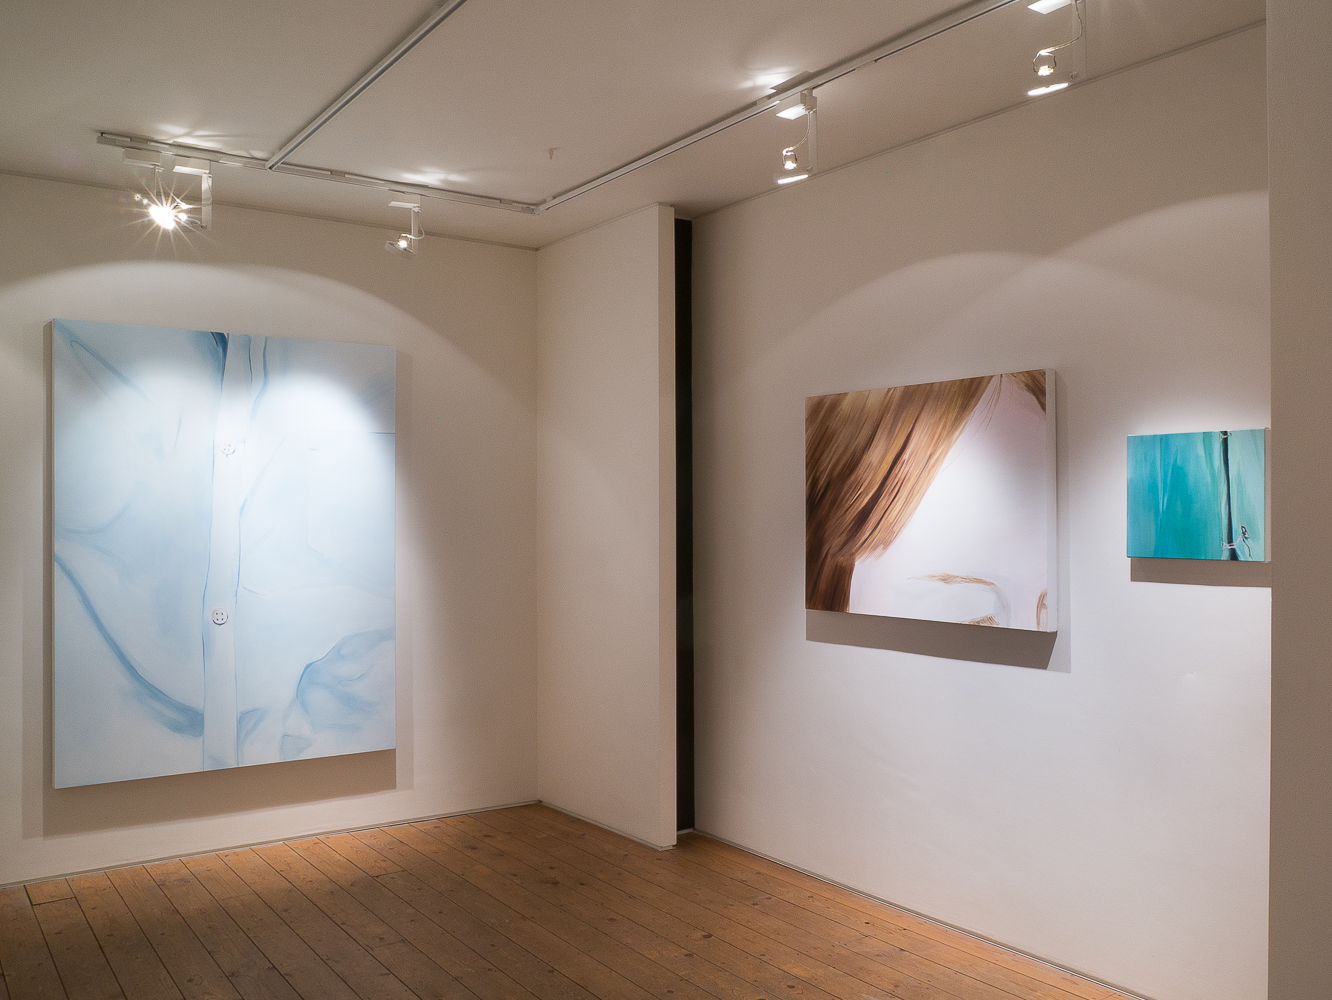 Aglaé Bassens solo exhibition at CABIN gallery curated by Joe Madeira